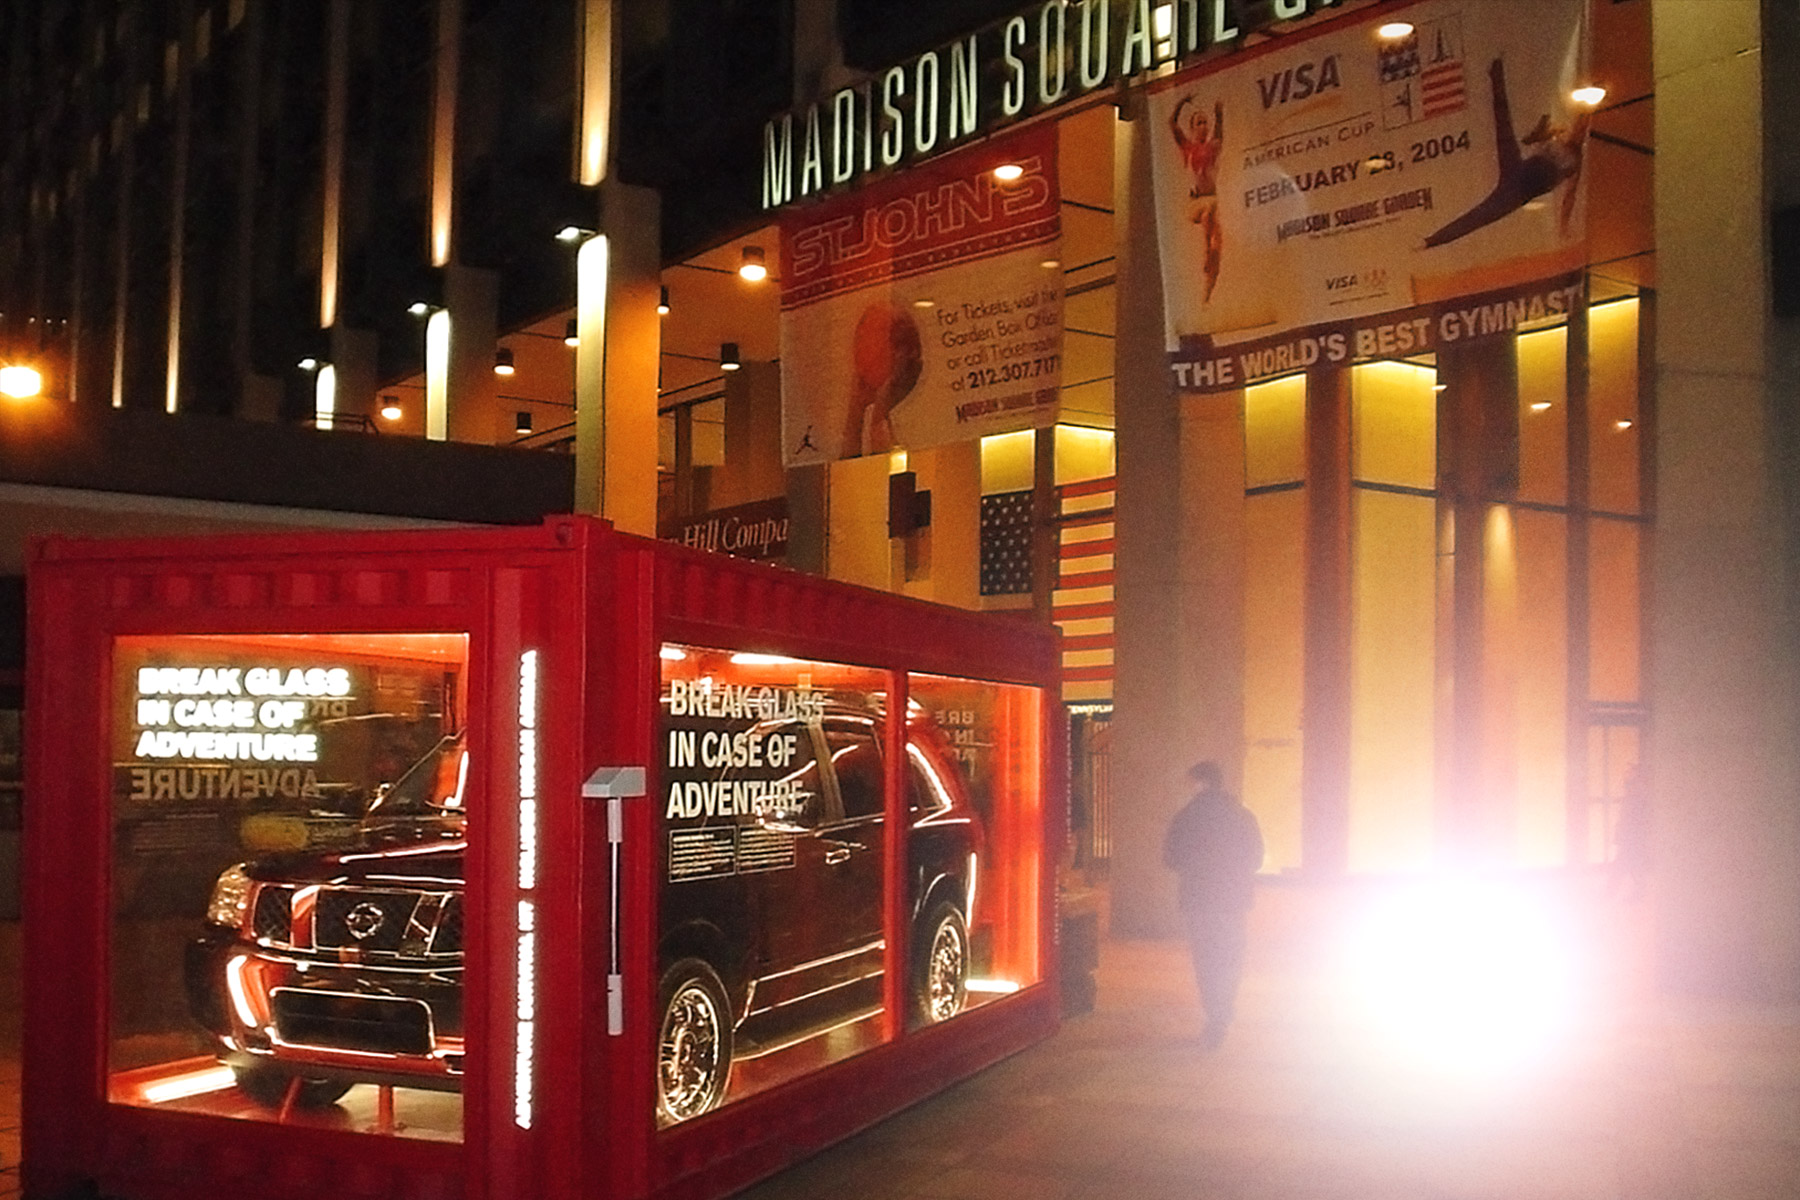 Pop up shops and advertising vending machines